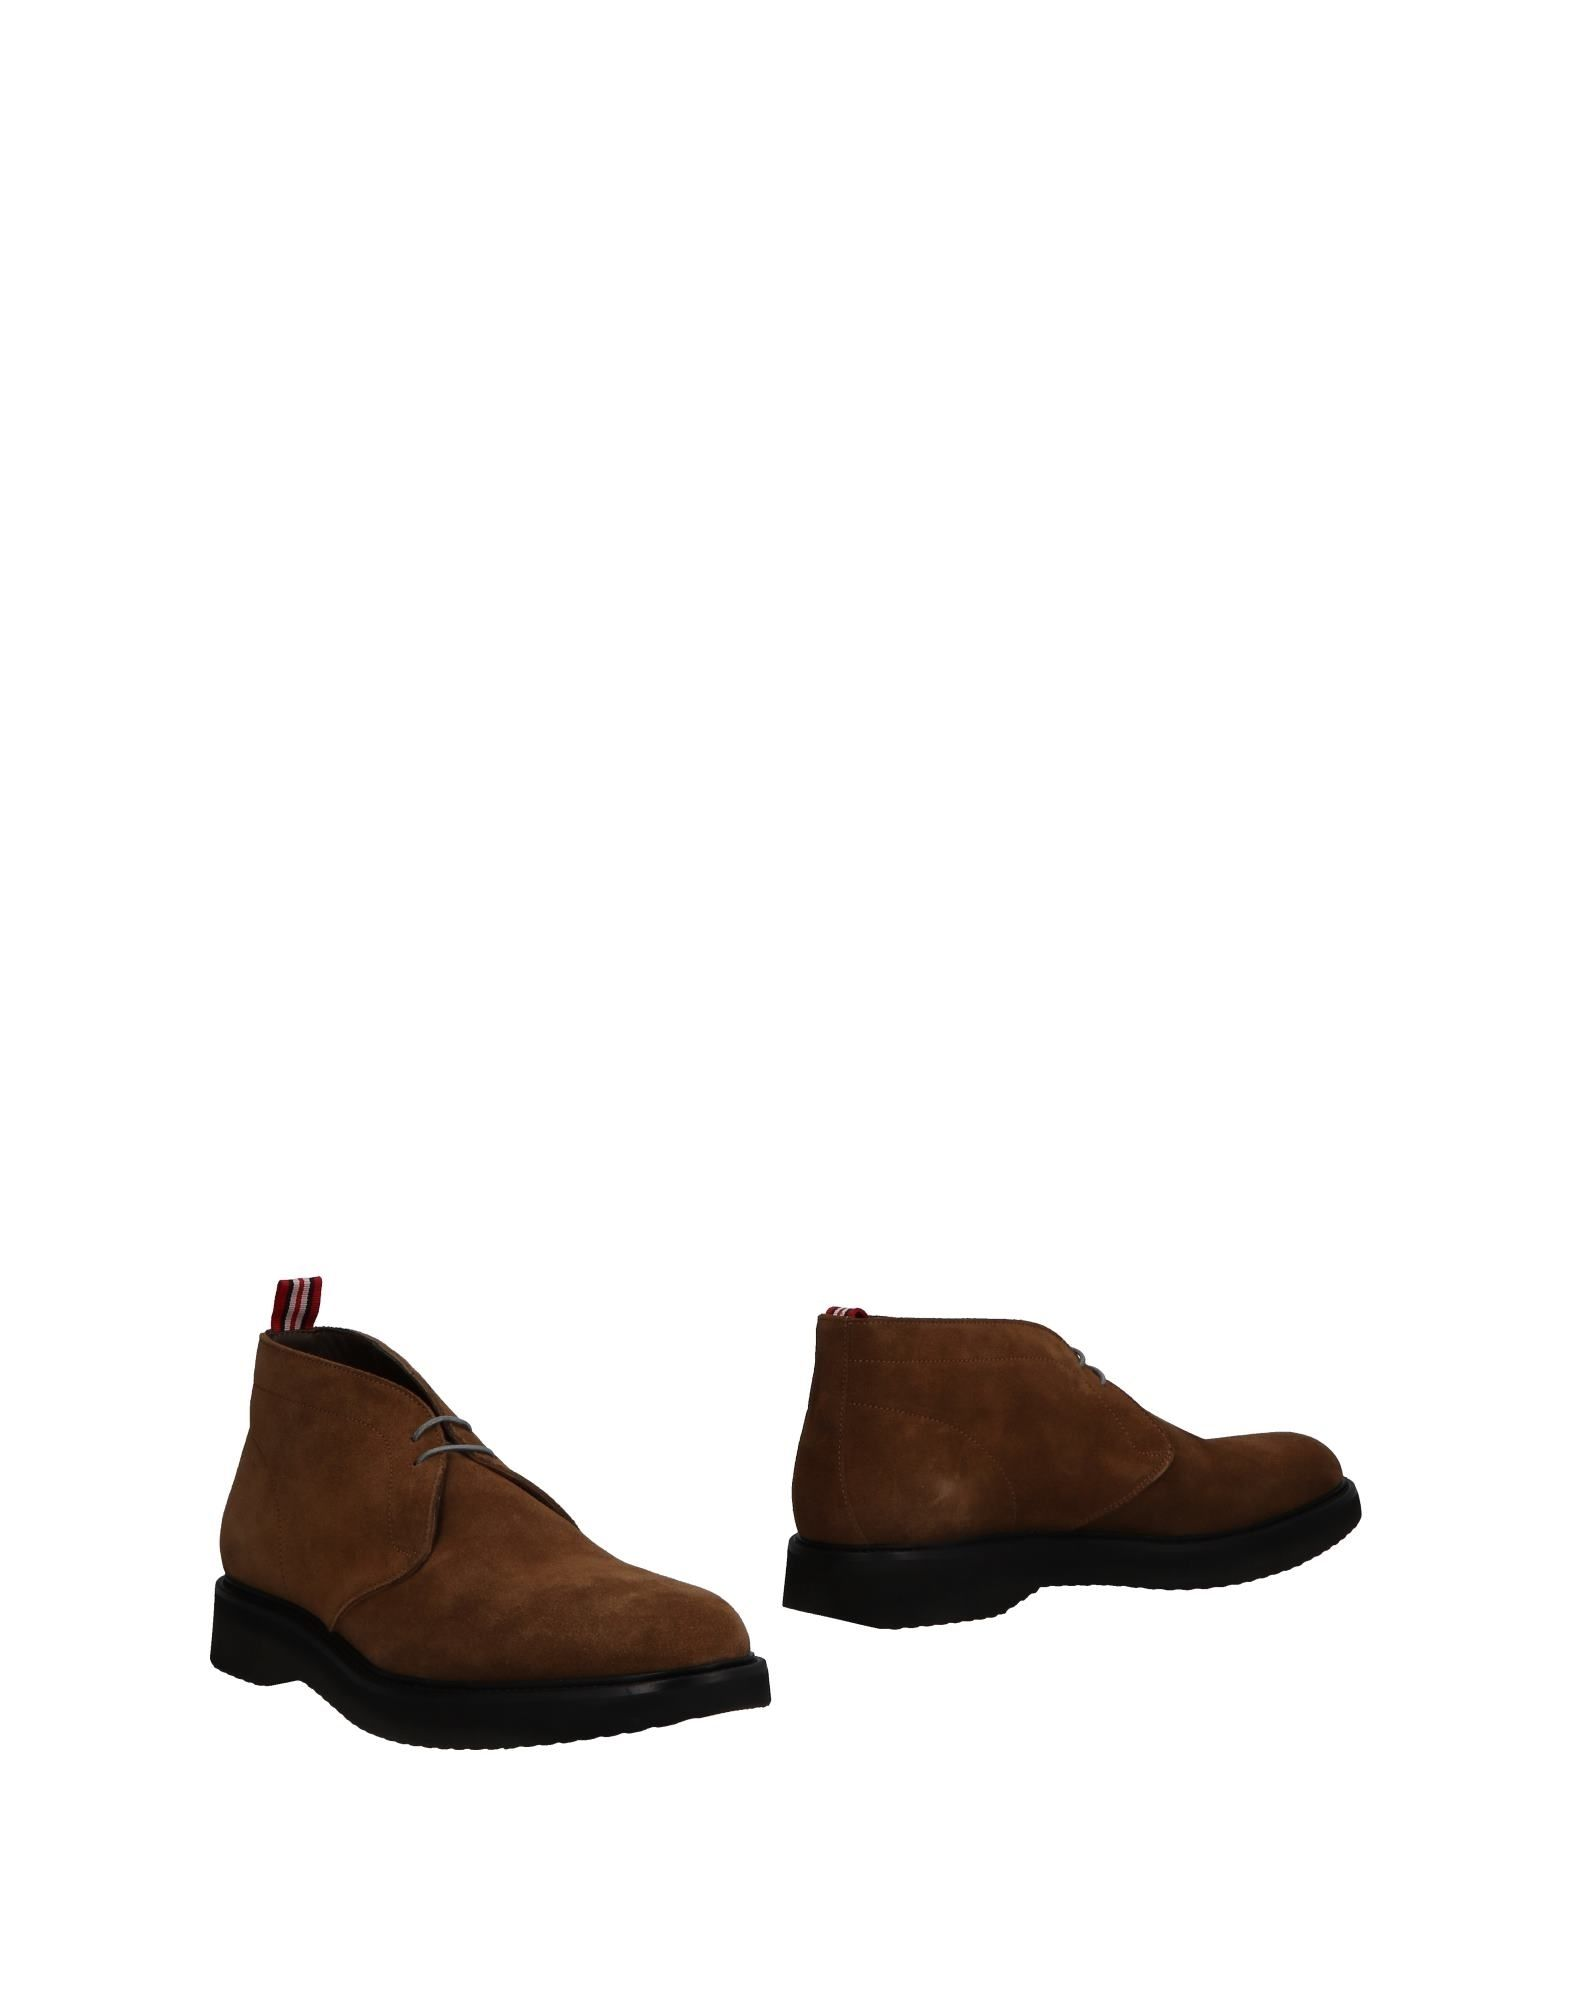 Green George Boots - Men Men Men Green George Boots online on  Canada - 11497178AC 5dc23a